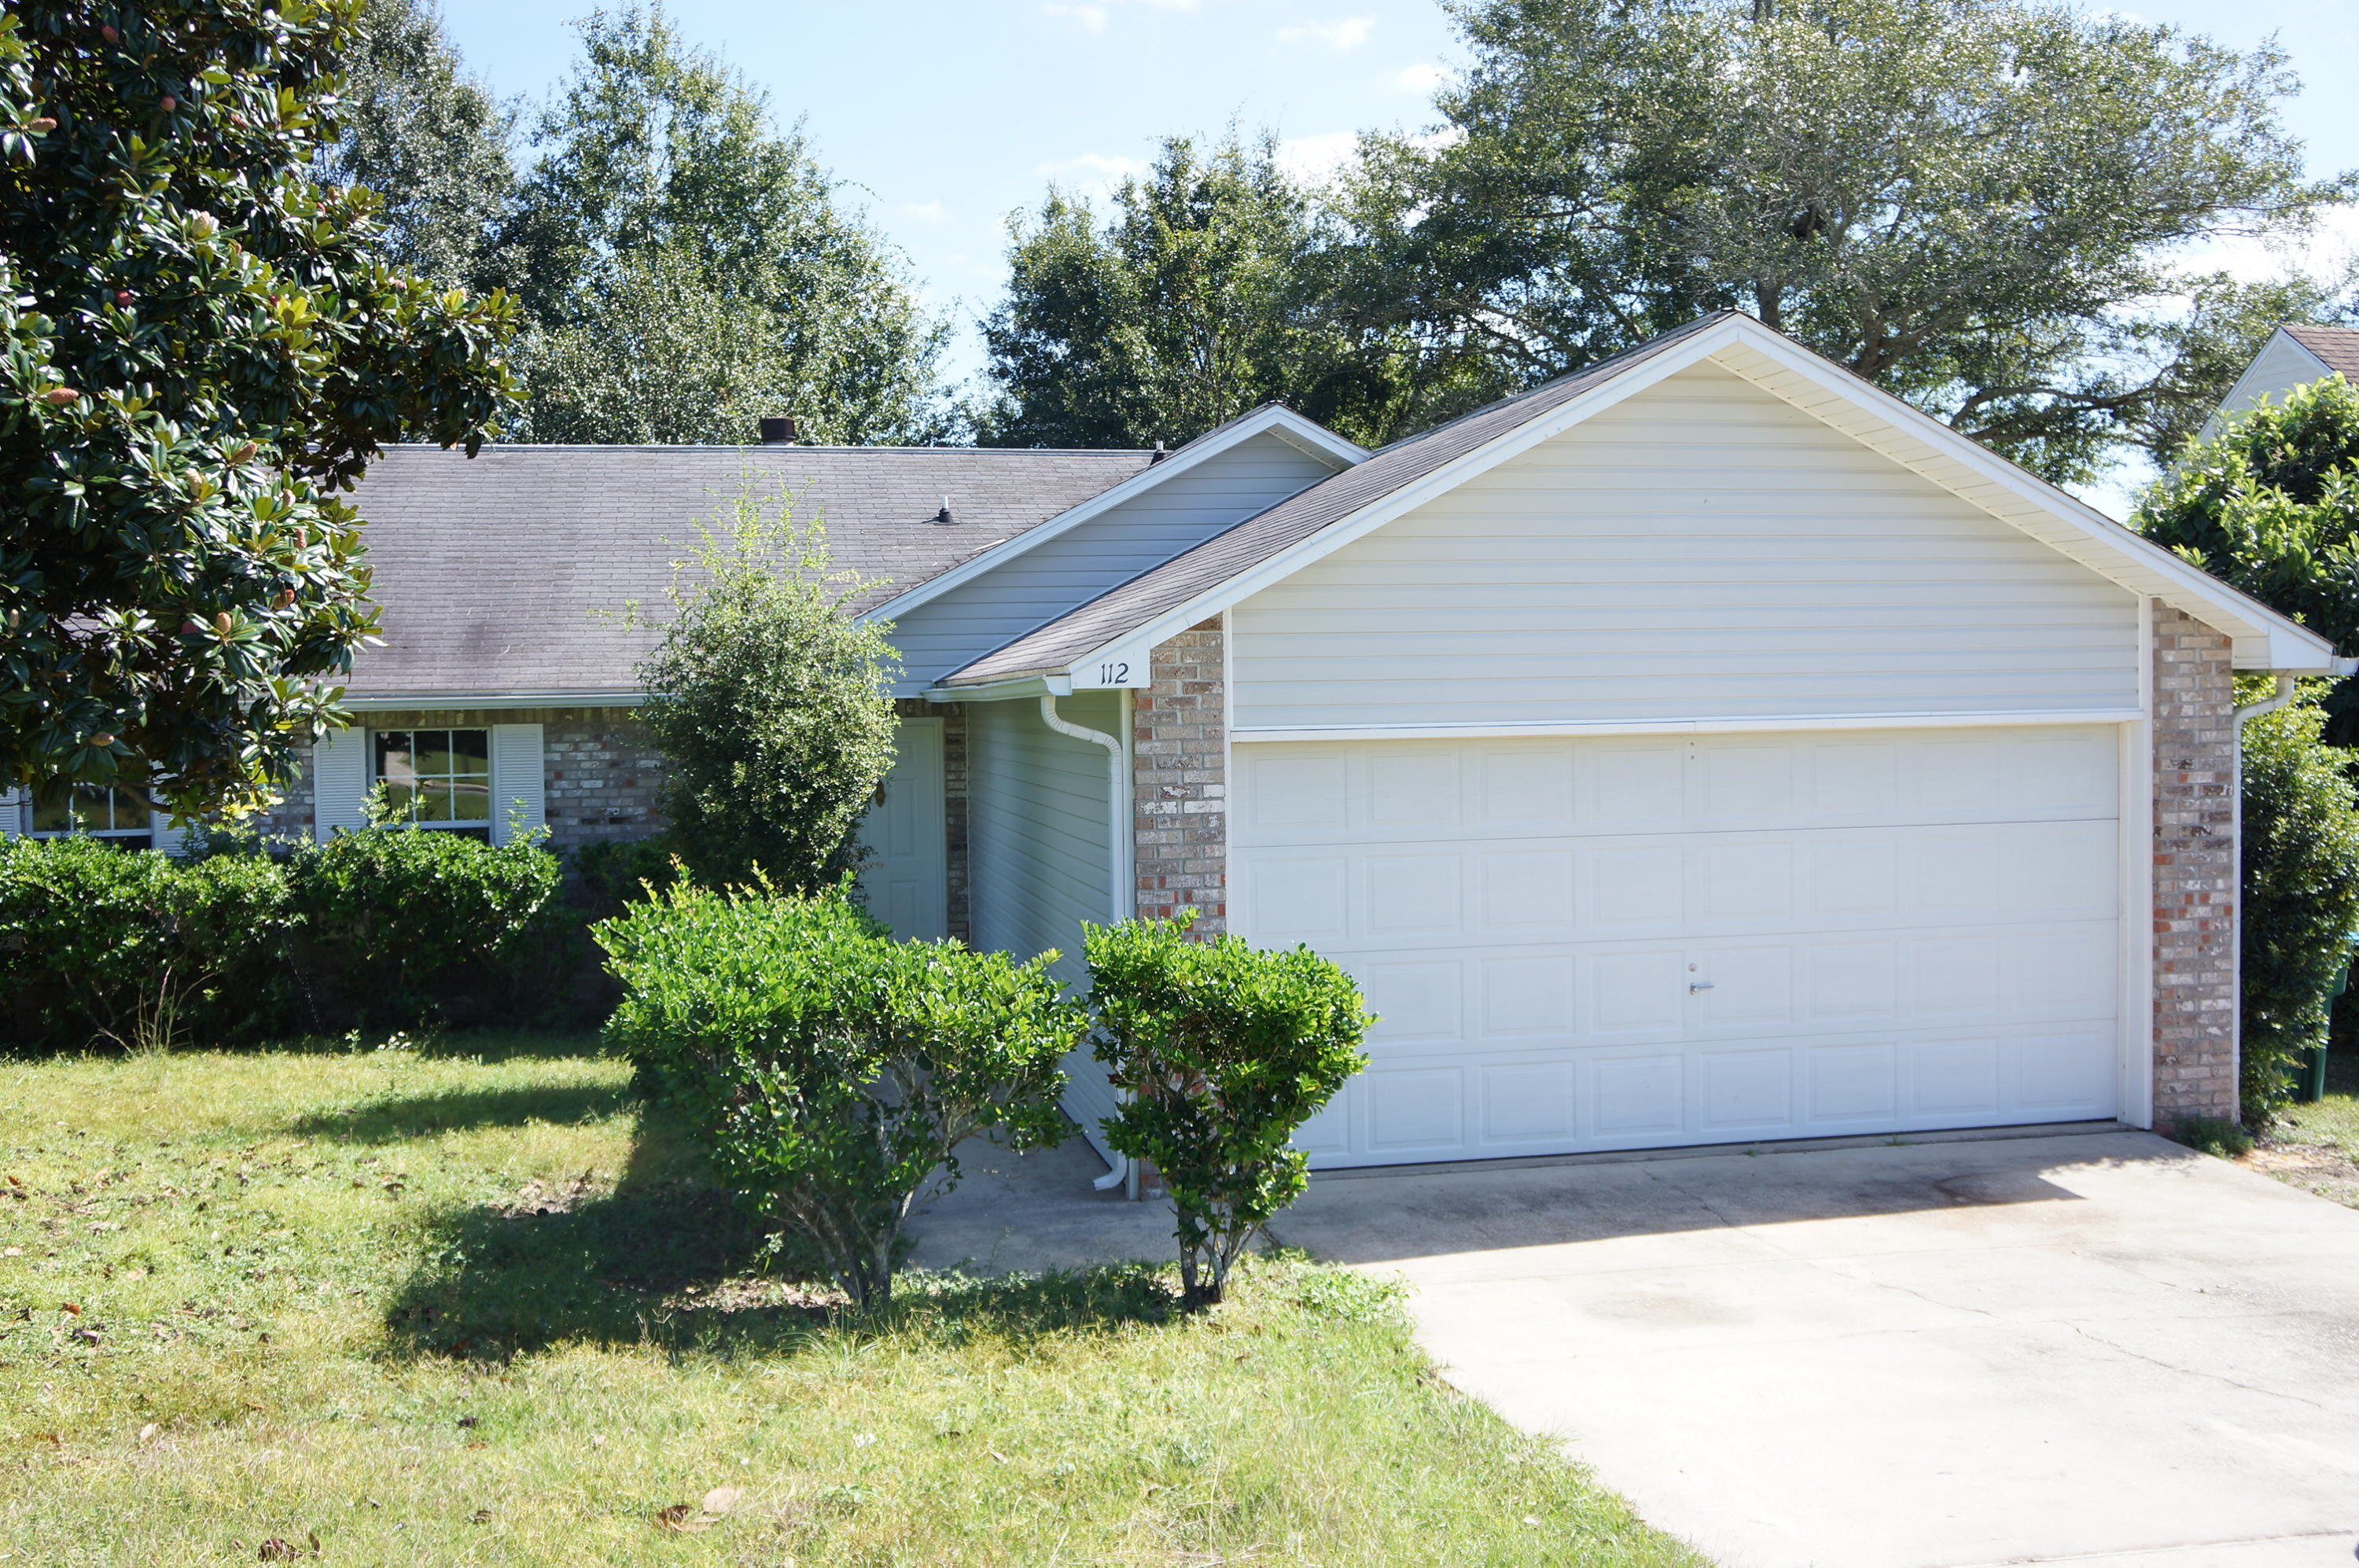 Property Photo For 112 Trenton Avenue, Crestview, FL 32539, MLS # 809263